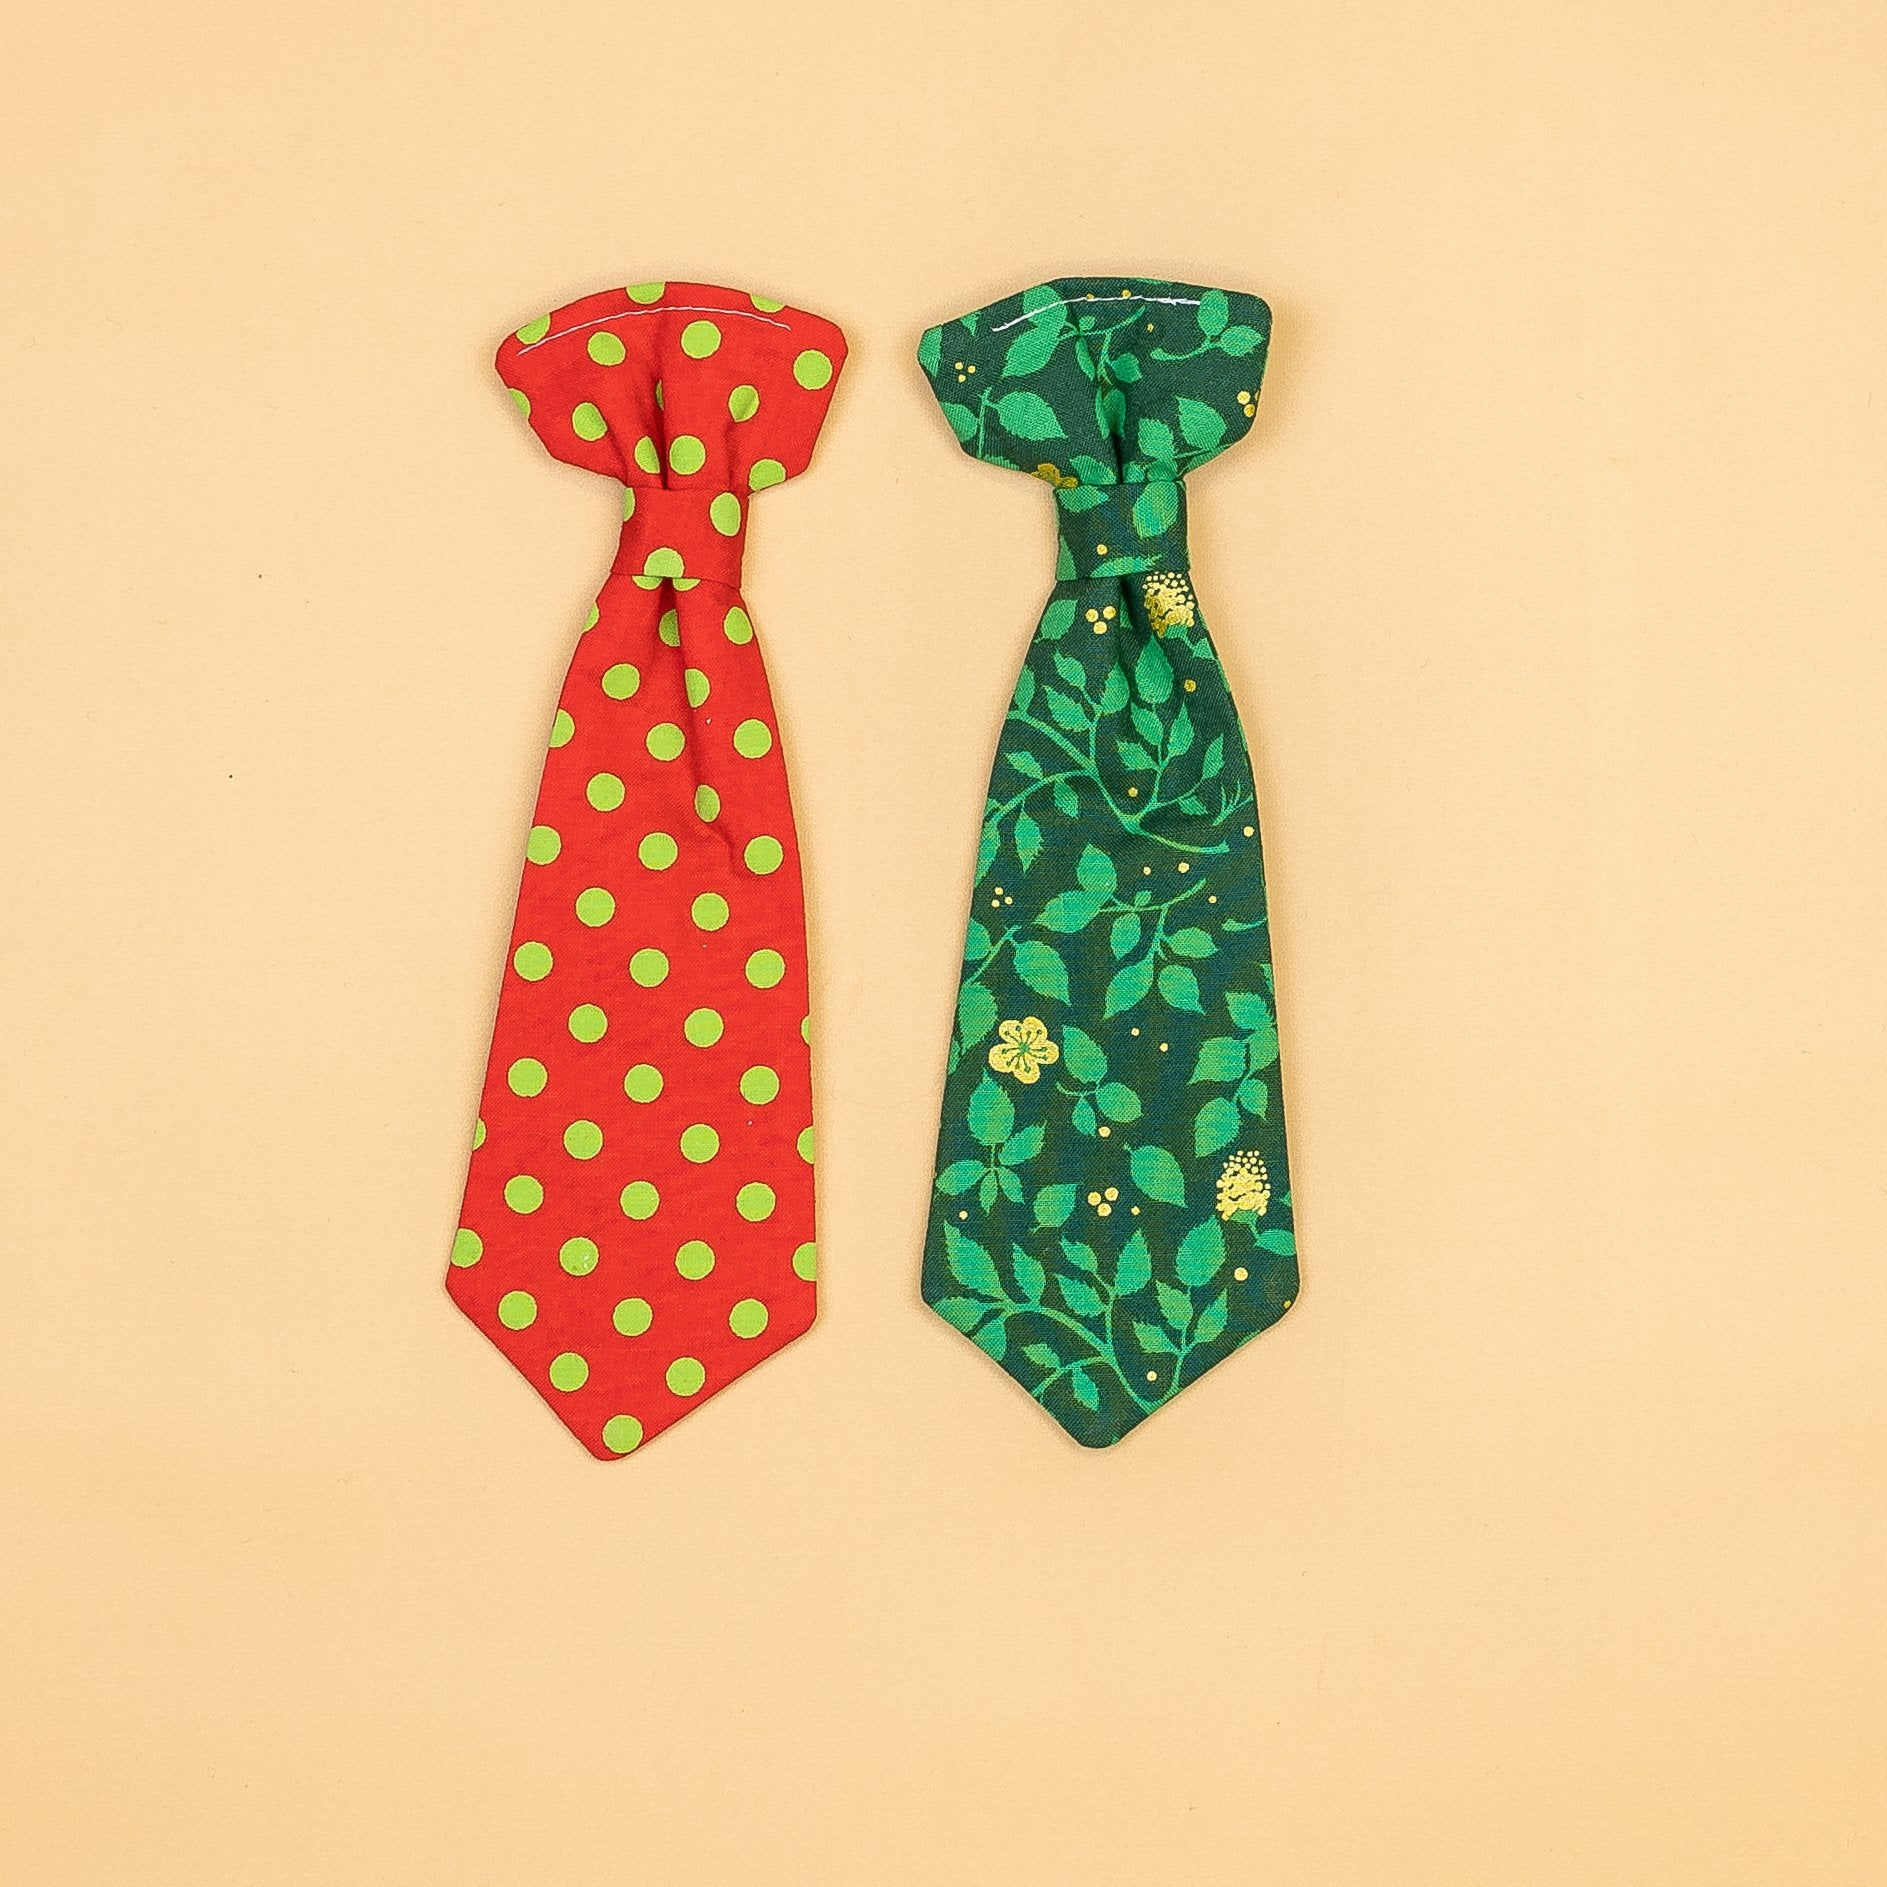 Cuddle Sleep Dream Ties Clearance Christmas Snap-On Neckties